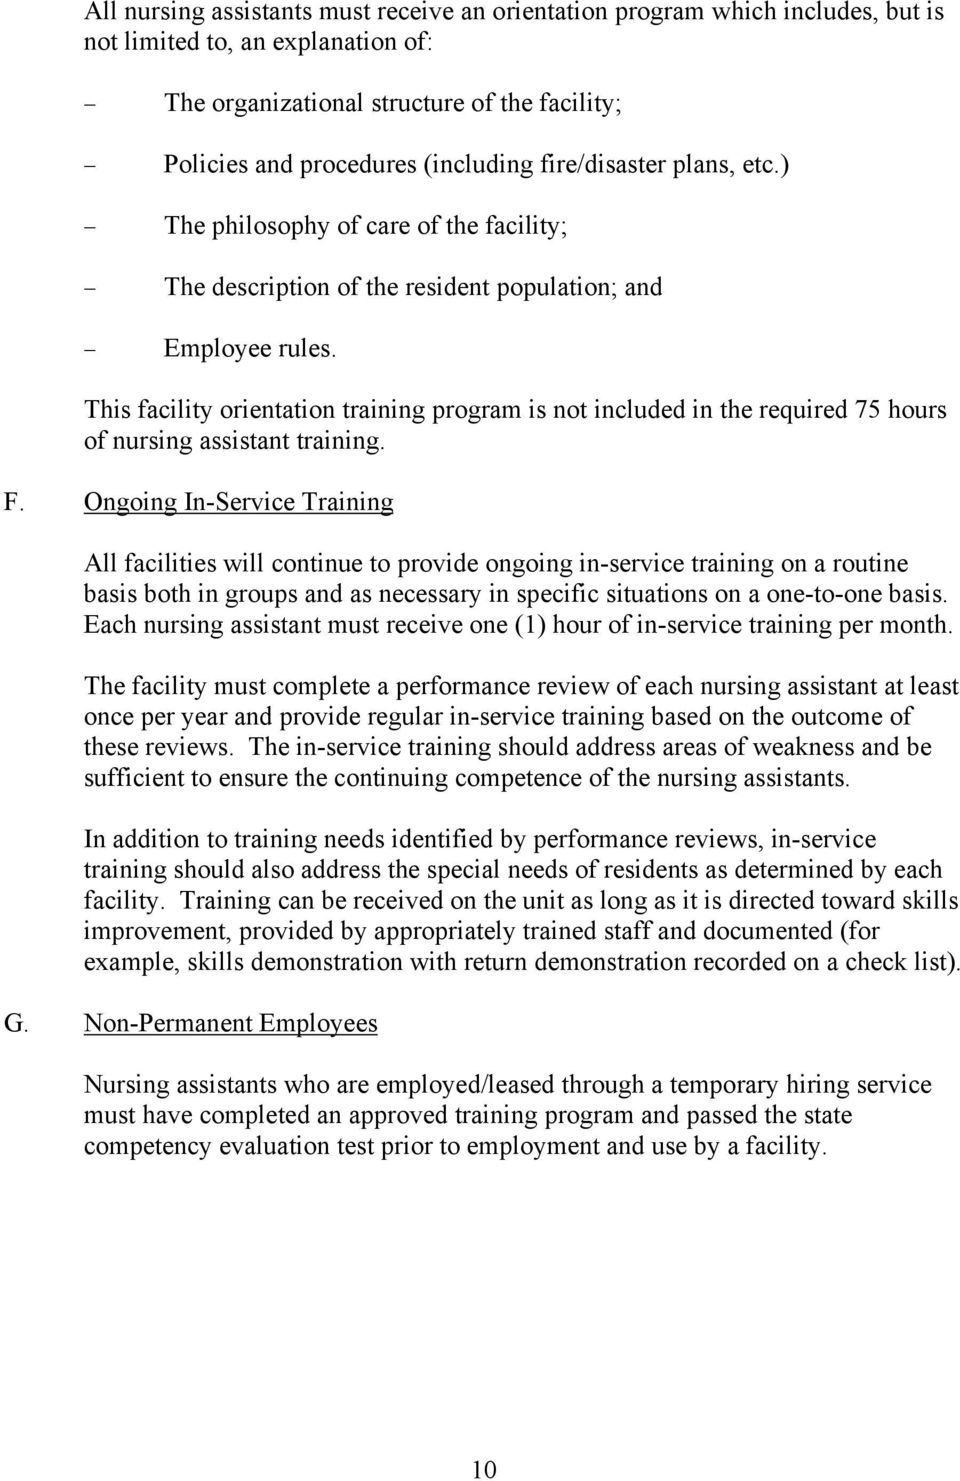 This facility orientation training program is not included in the required 75 hours of nursing assistant training. F.